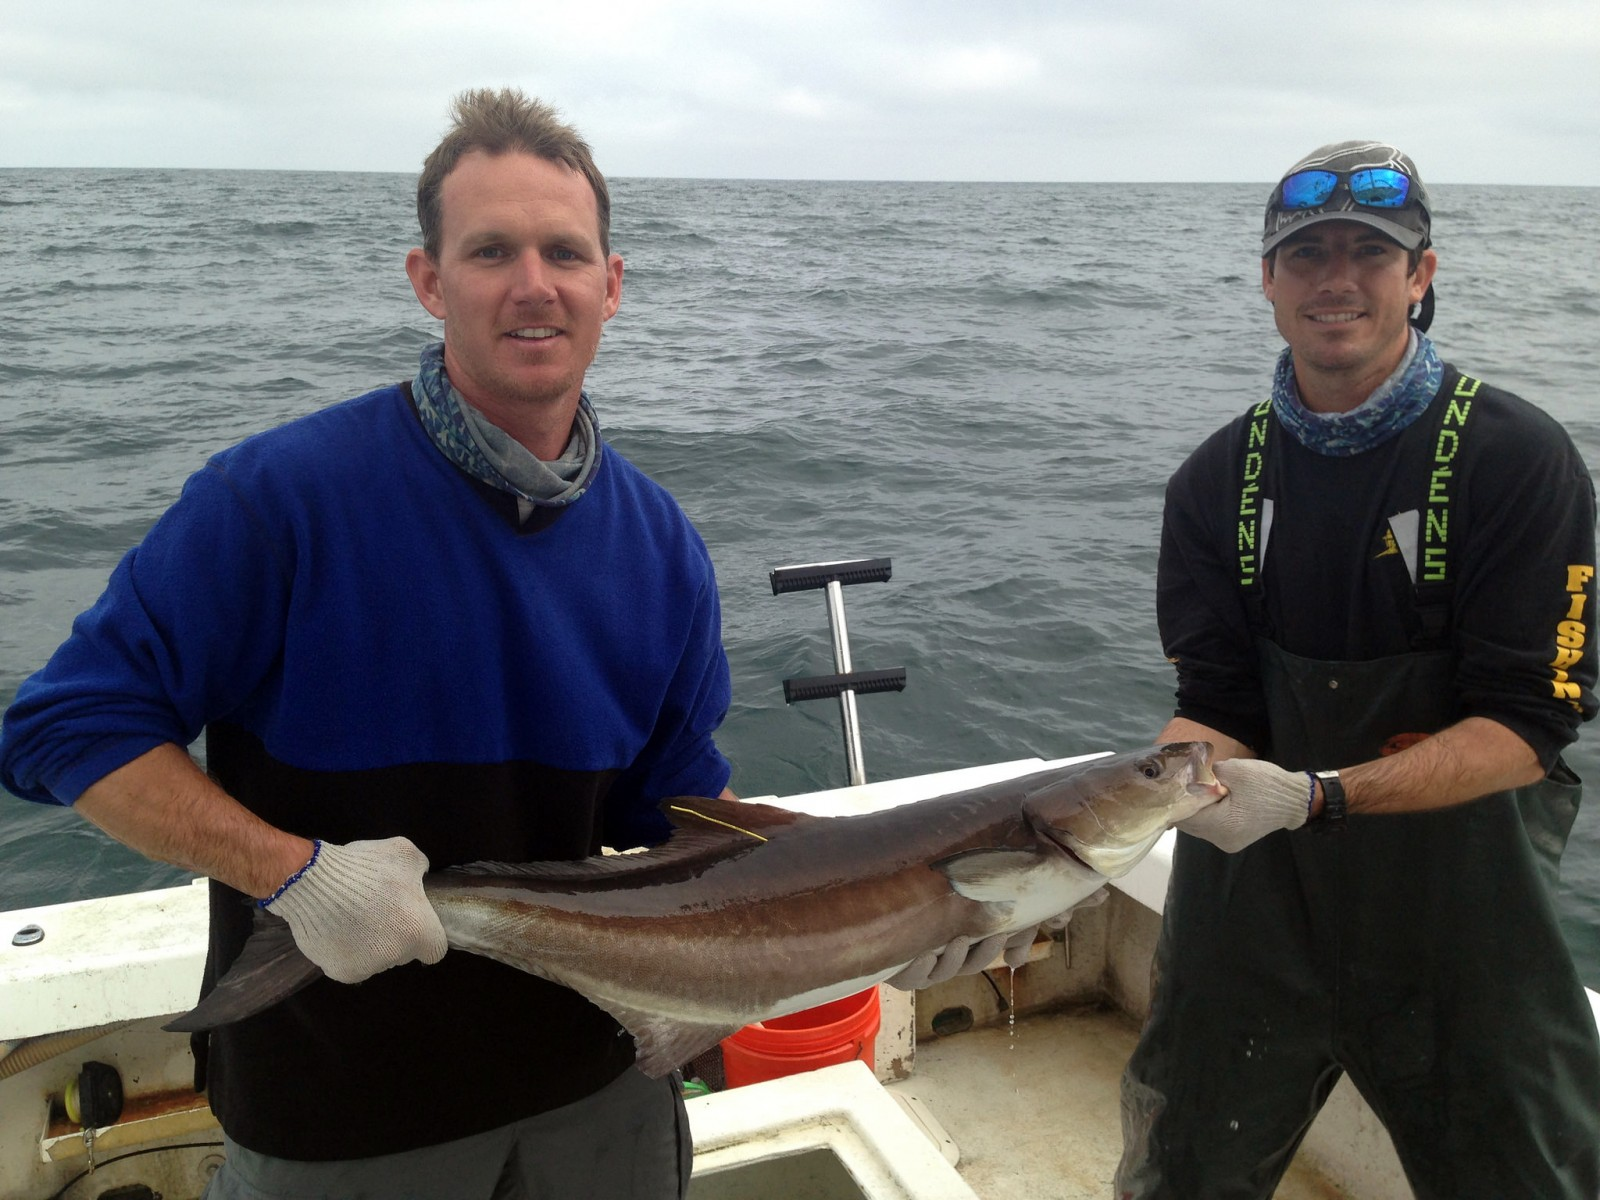 Beau Yeiser and JJ Brodbeck, biologists with our Fisheries-Independent Monitoring (FIM) Program, hold a tagged cobia caught offshore of Stuart, FL. Our fisheries staff in Tequesta are monitoring the movements of adult cobia in offshore waters using acoustic receiver technology. Tracking the movements of cobia (Rachycentron canadum) will allows researchers to determine migration patterns and the geographical location of the biological Atlantic and Gulf stock boundary.